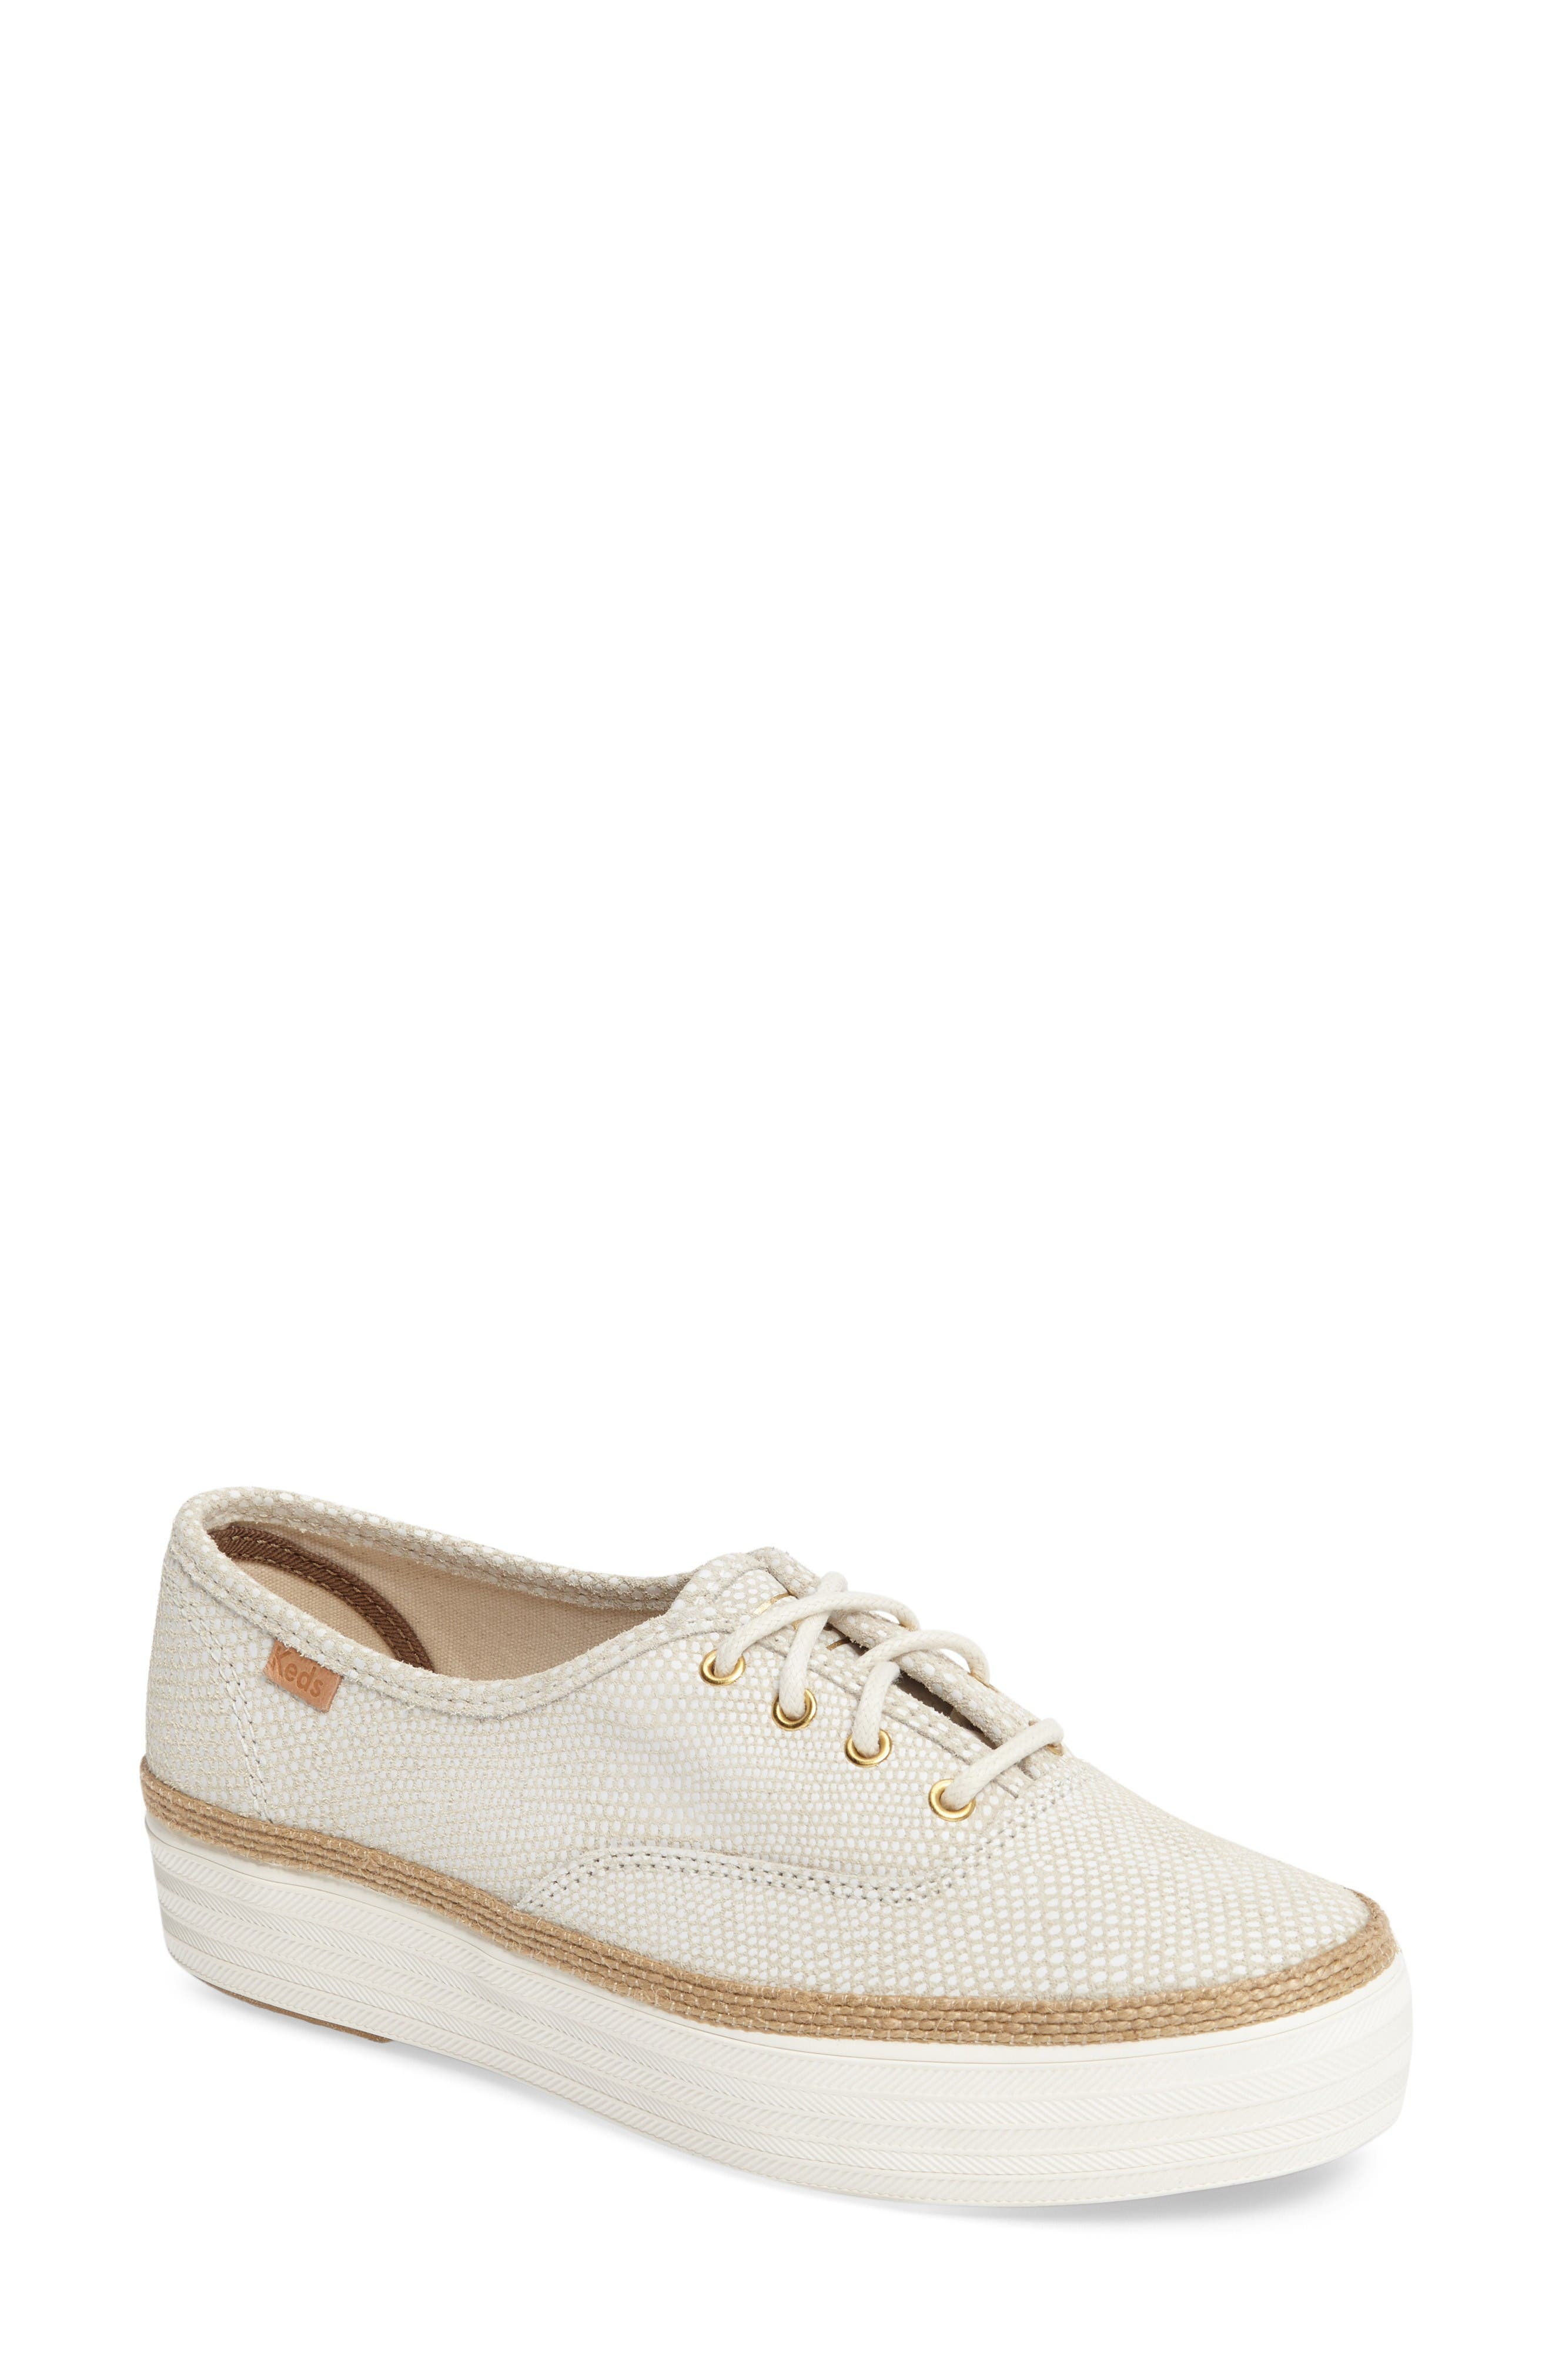 Triple Deck Platform Sneaker,                         Main,                         color, Cream